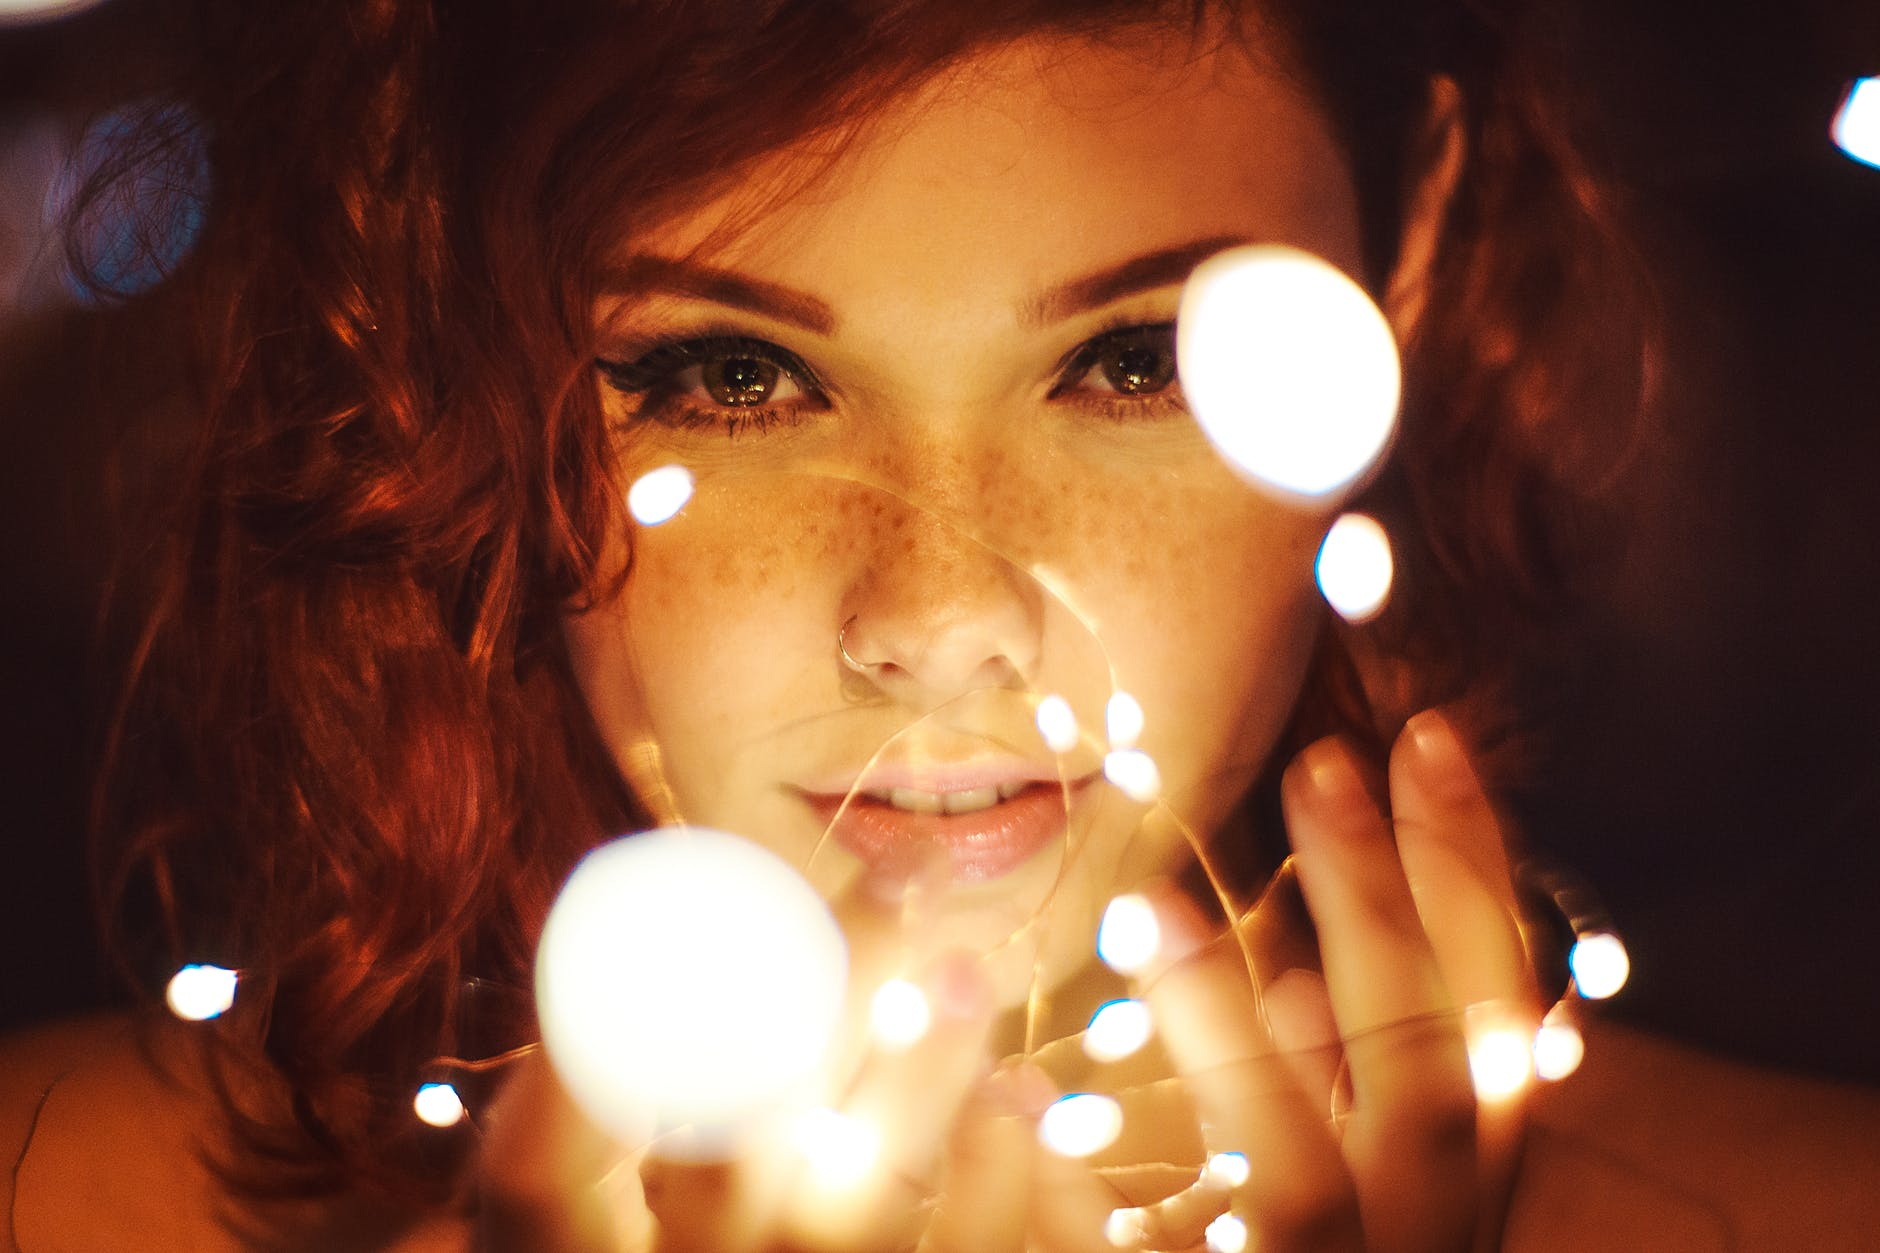 Stargirl lets her light shine photography of a woman holding lights